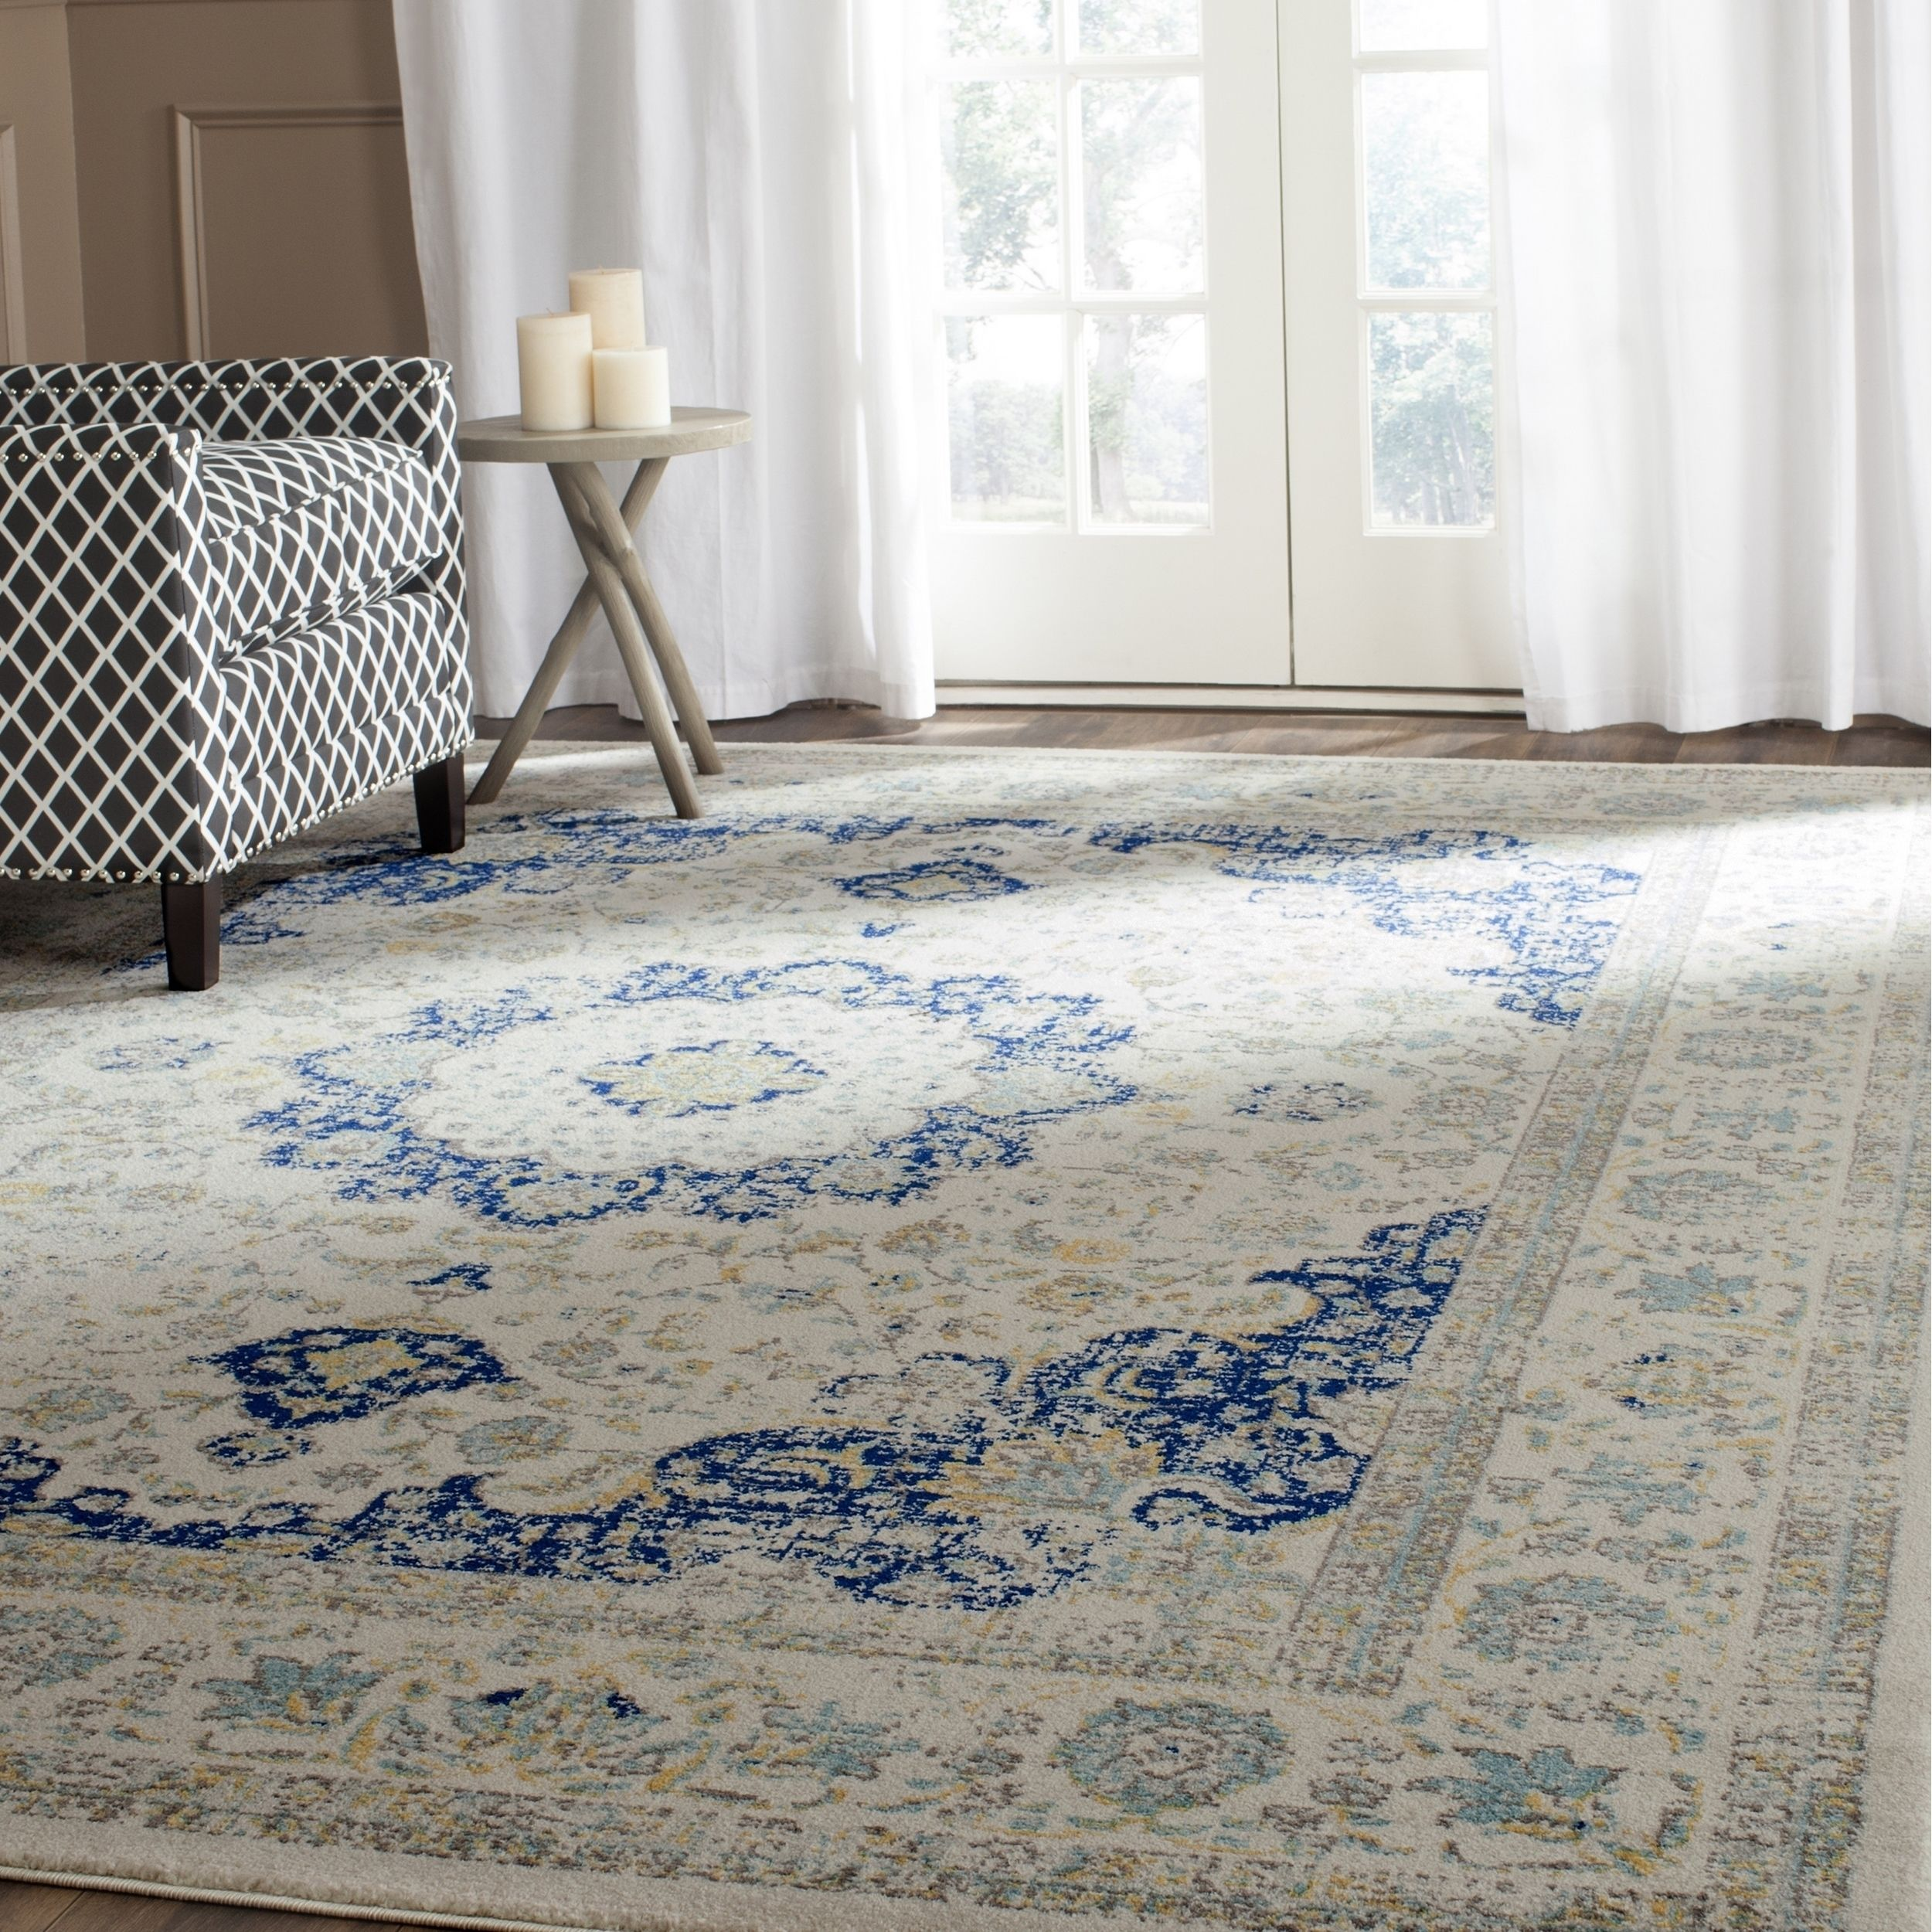 Safavieh's Evoke collection is inspired by timeless vintage designs crafted with the softest polypropylene available.